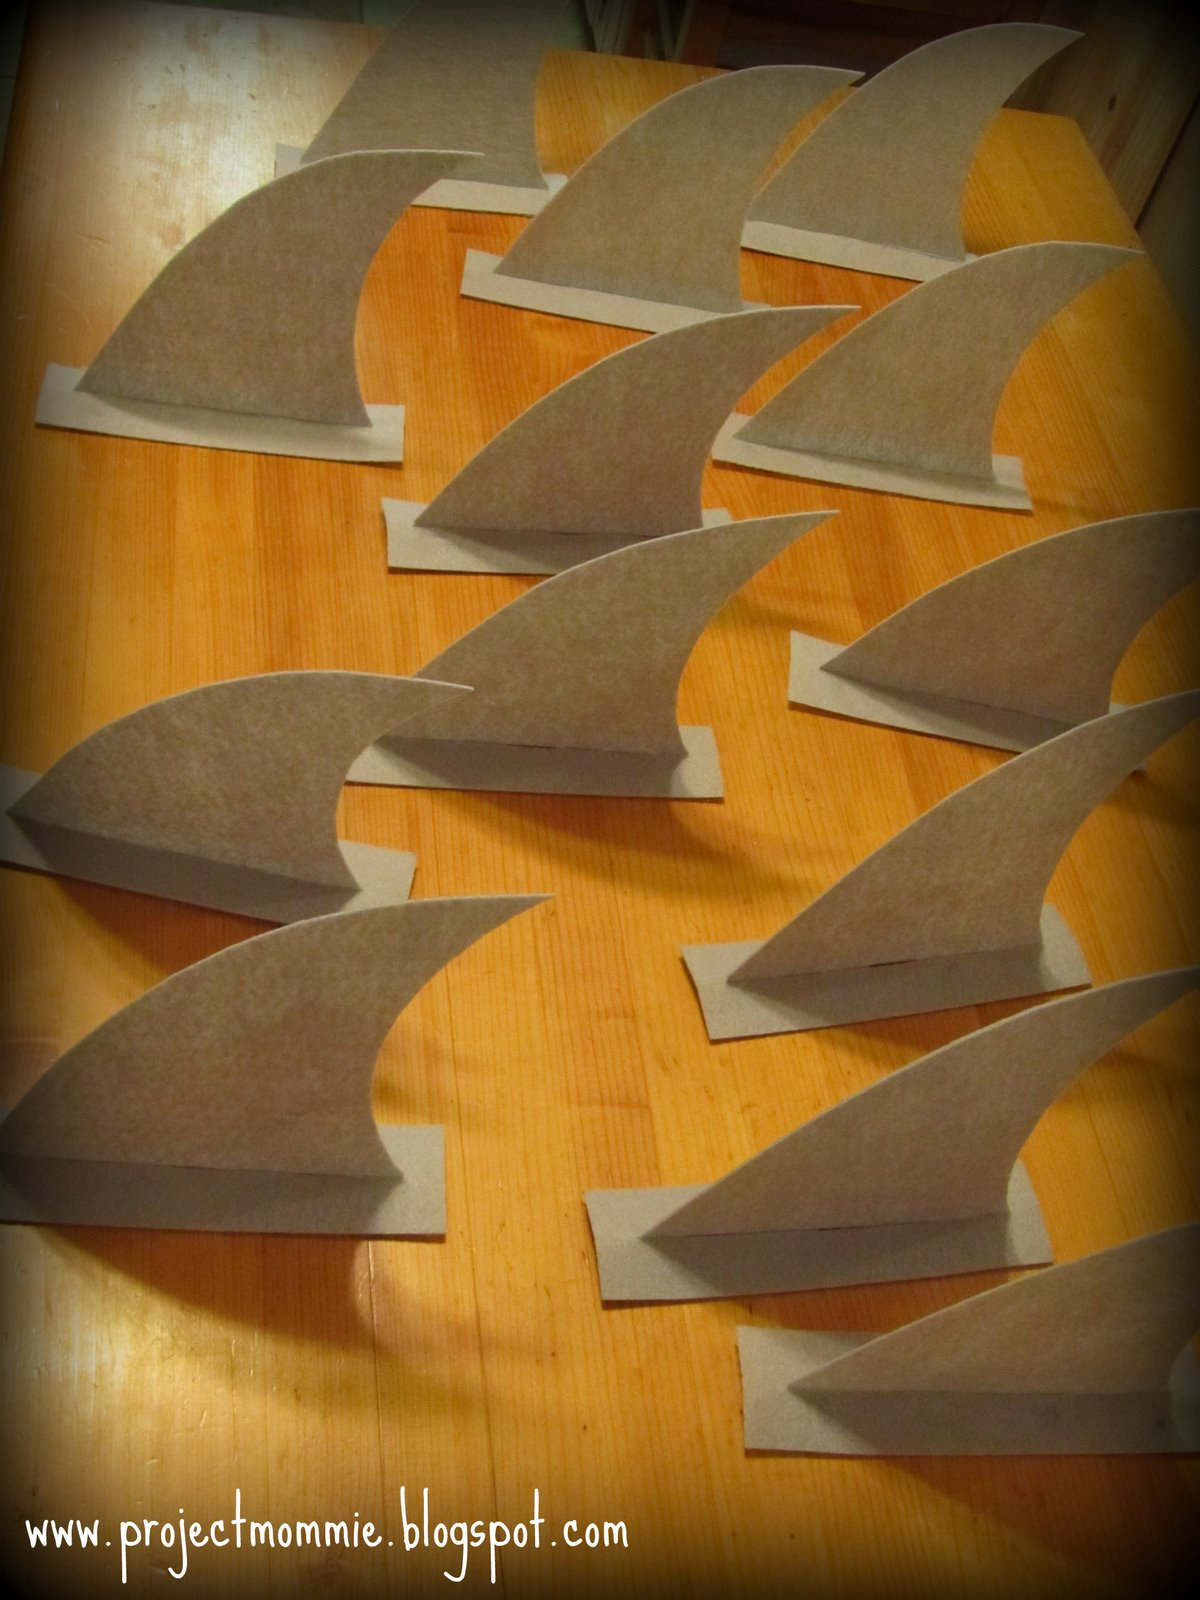 Project: Mommie: Planning a Shark Party